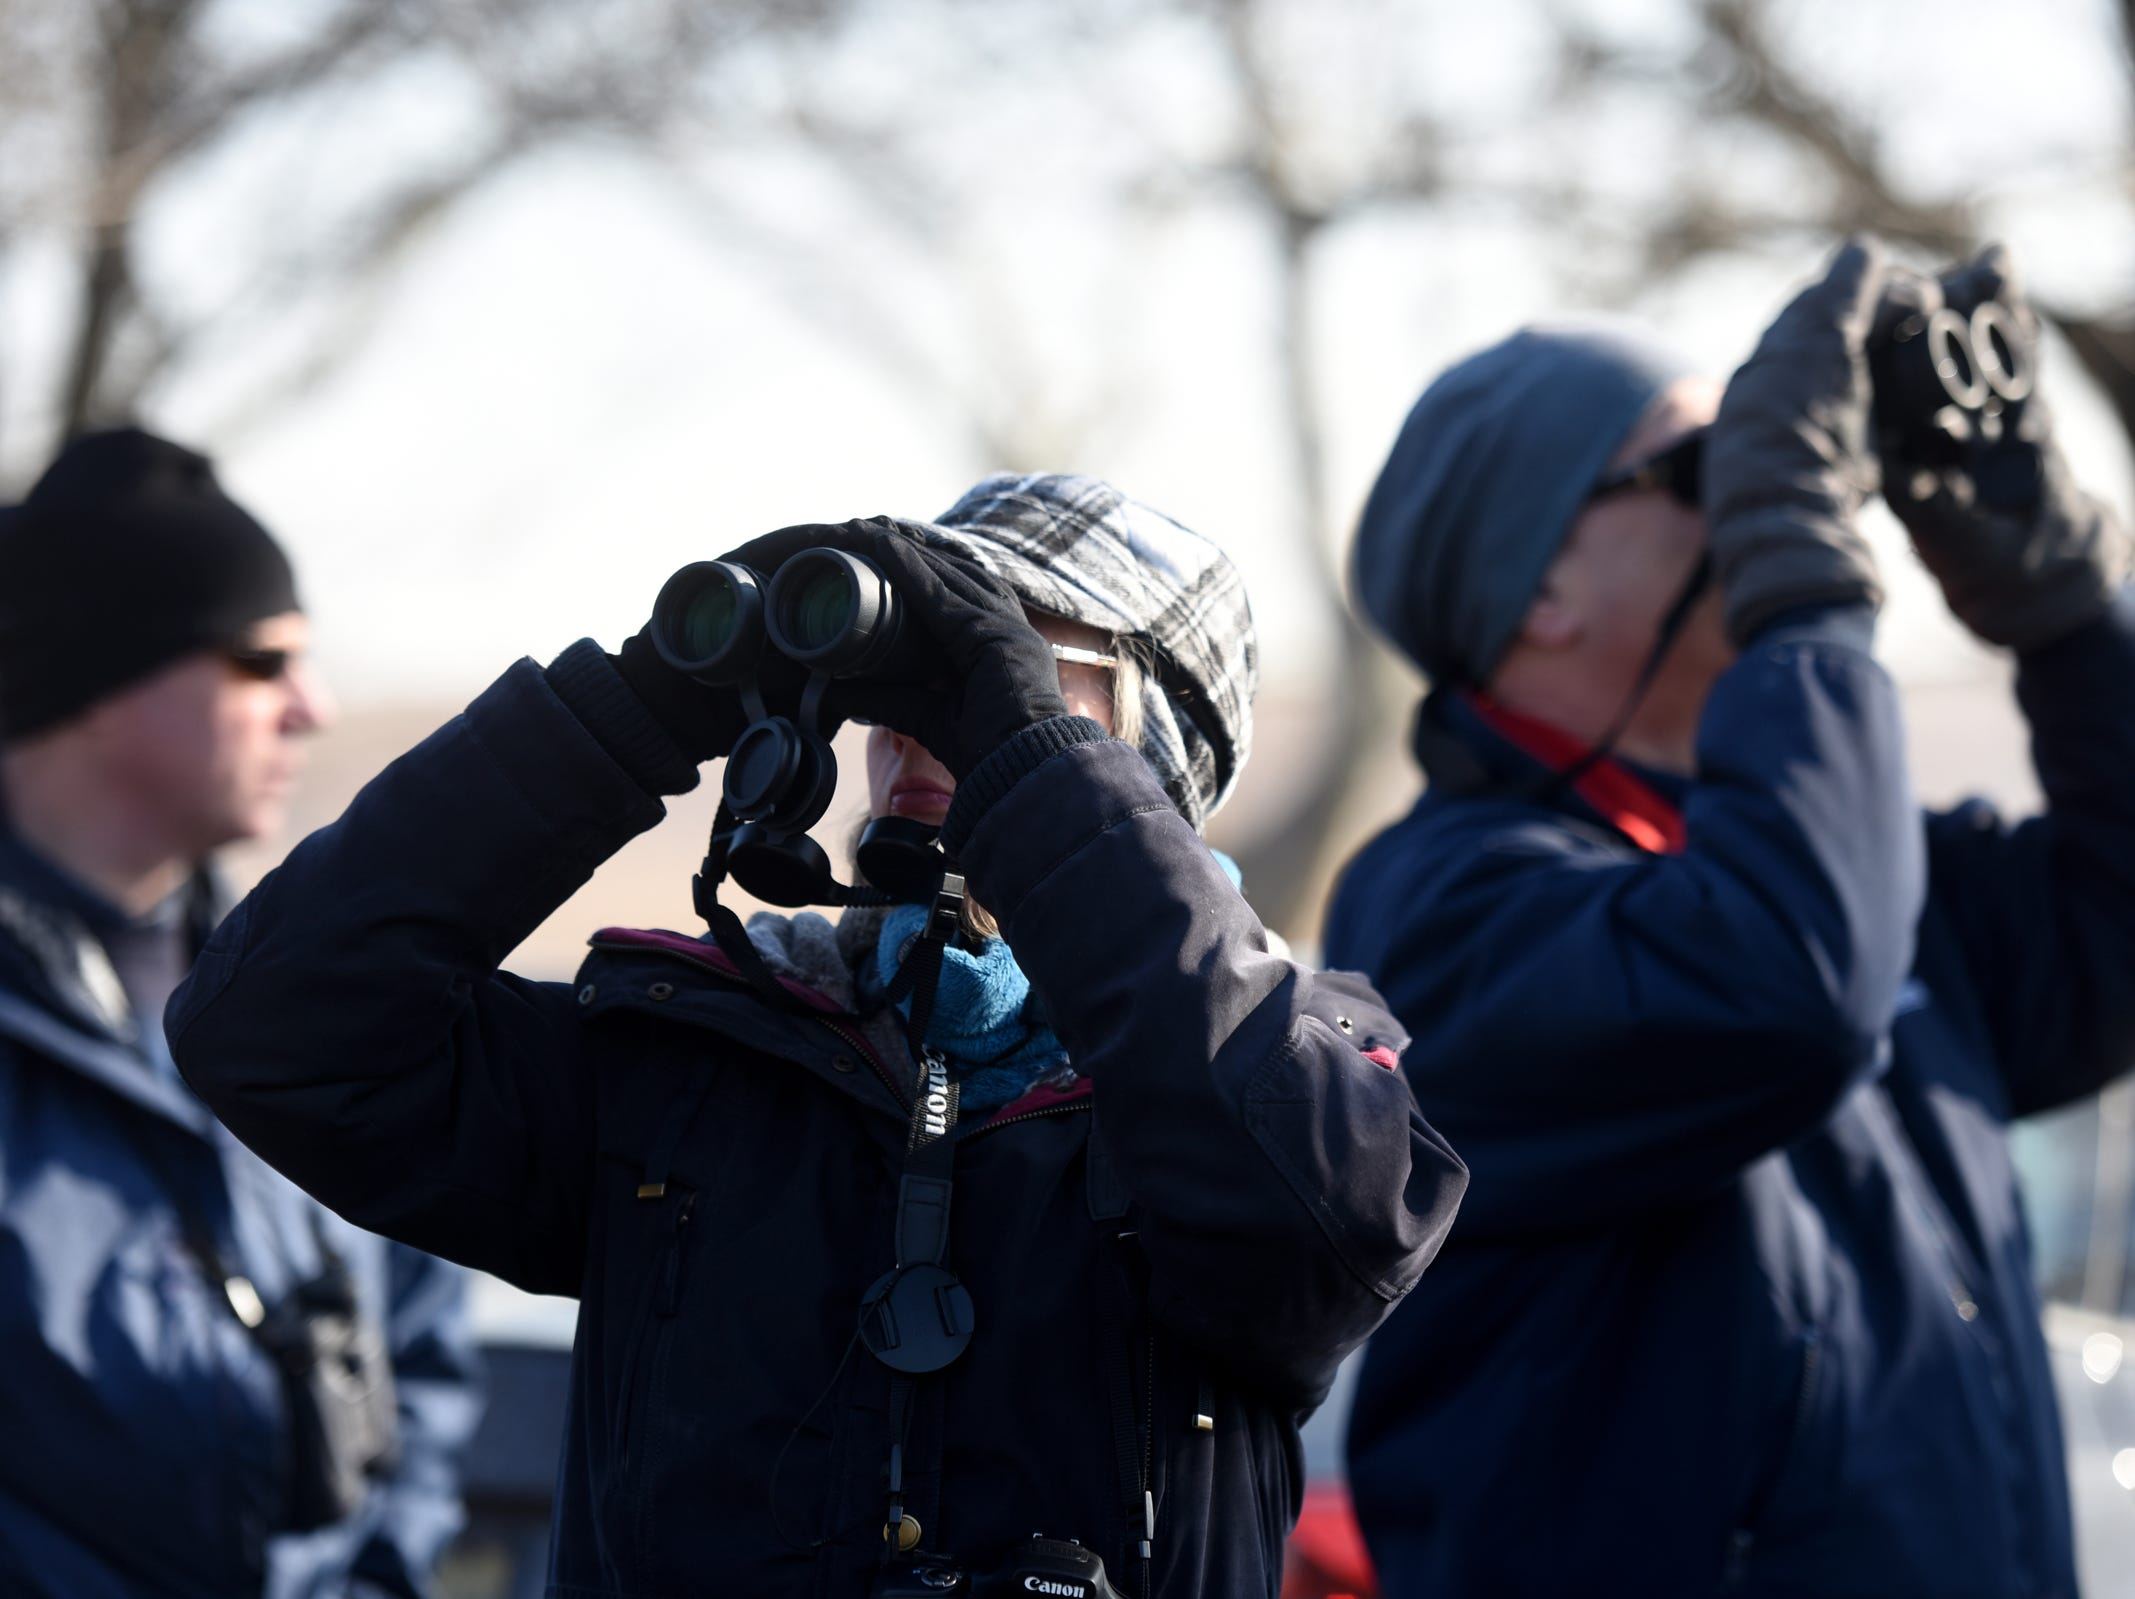 Lynn McKenzie of Ramsey and David Kleiner of Bloomfield use their binoculars to search for birds during a wintering birds and nature walk hosted by the Bergen County Audubon Society at Dekorte Park in Lyndhurst on Sunday, February 3, 2019.